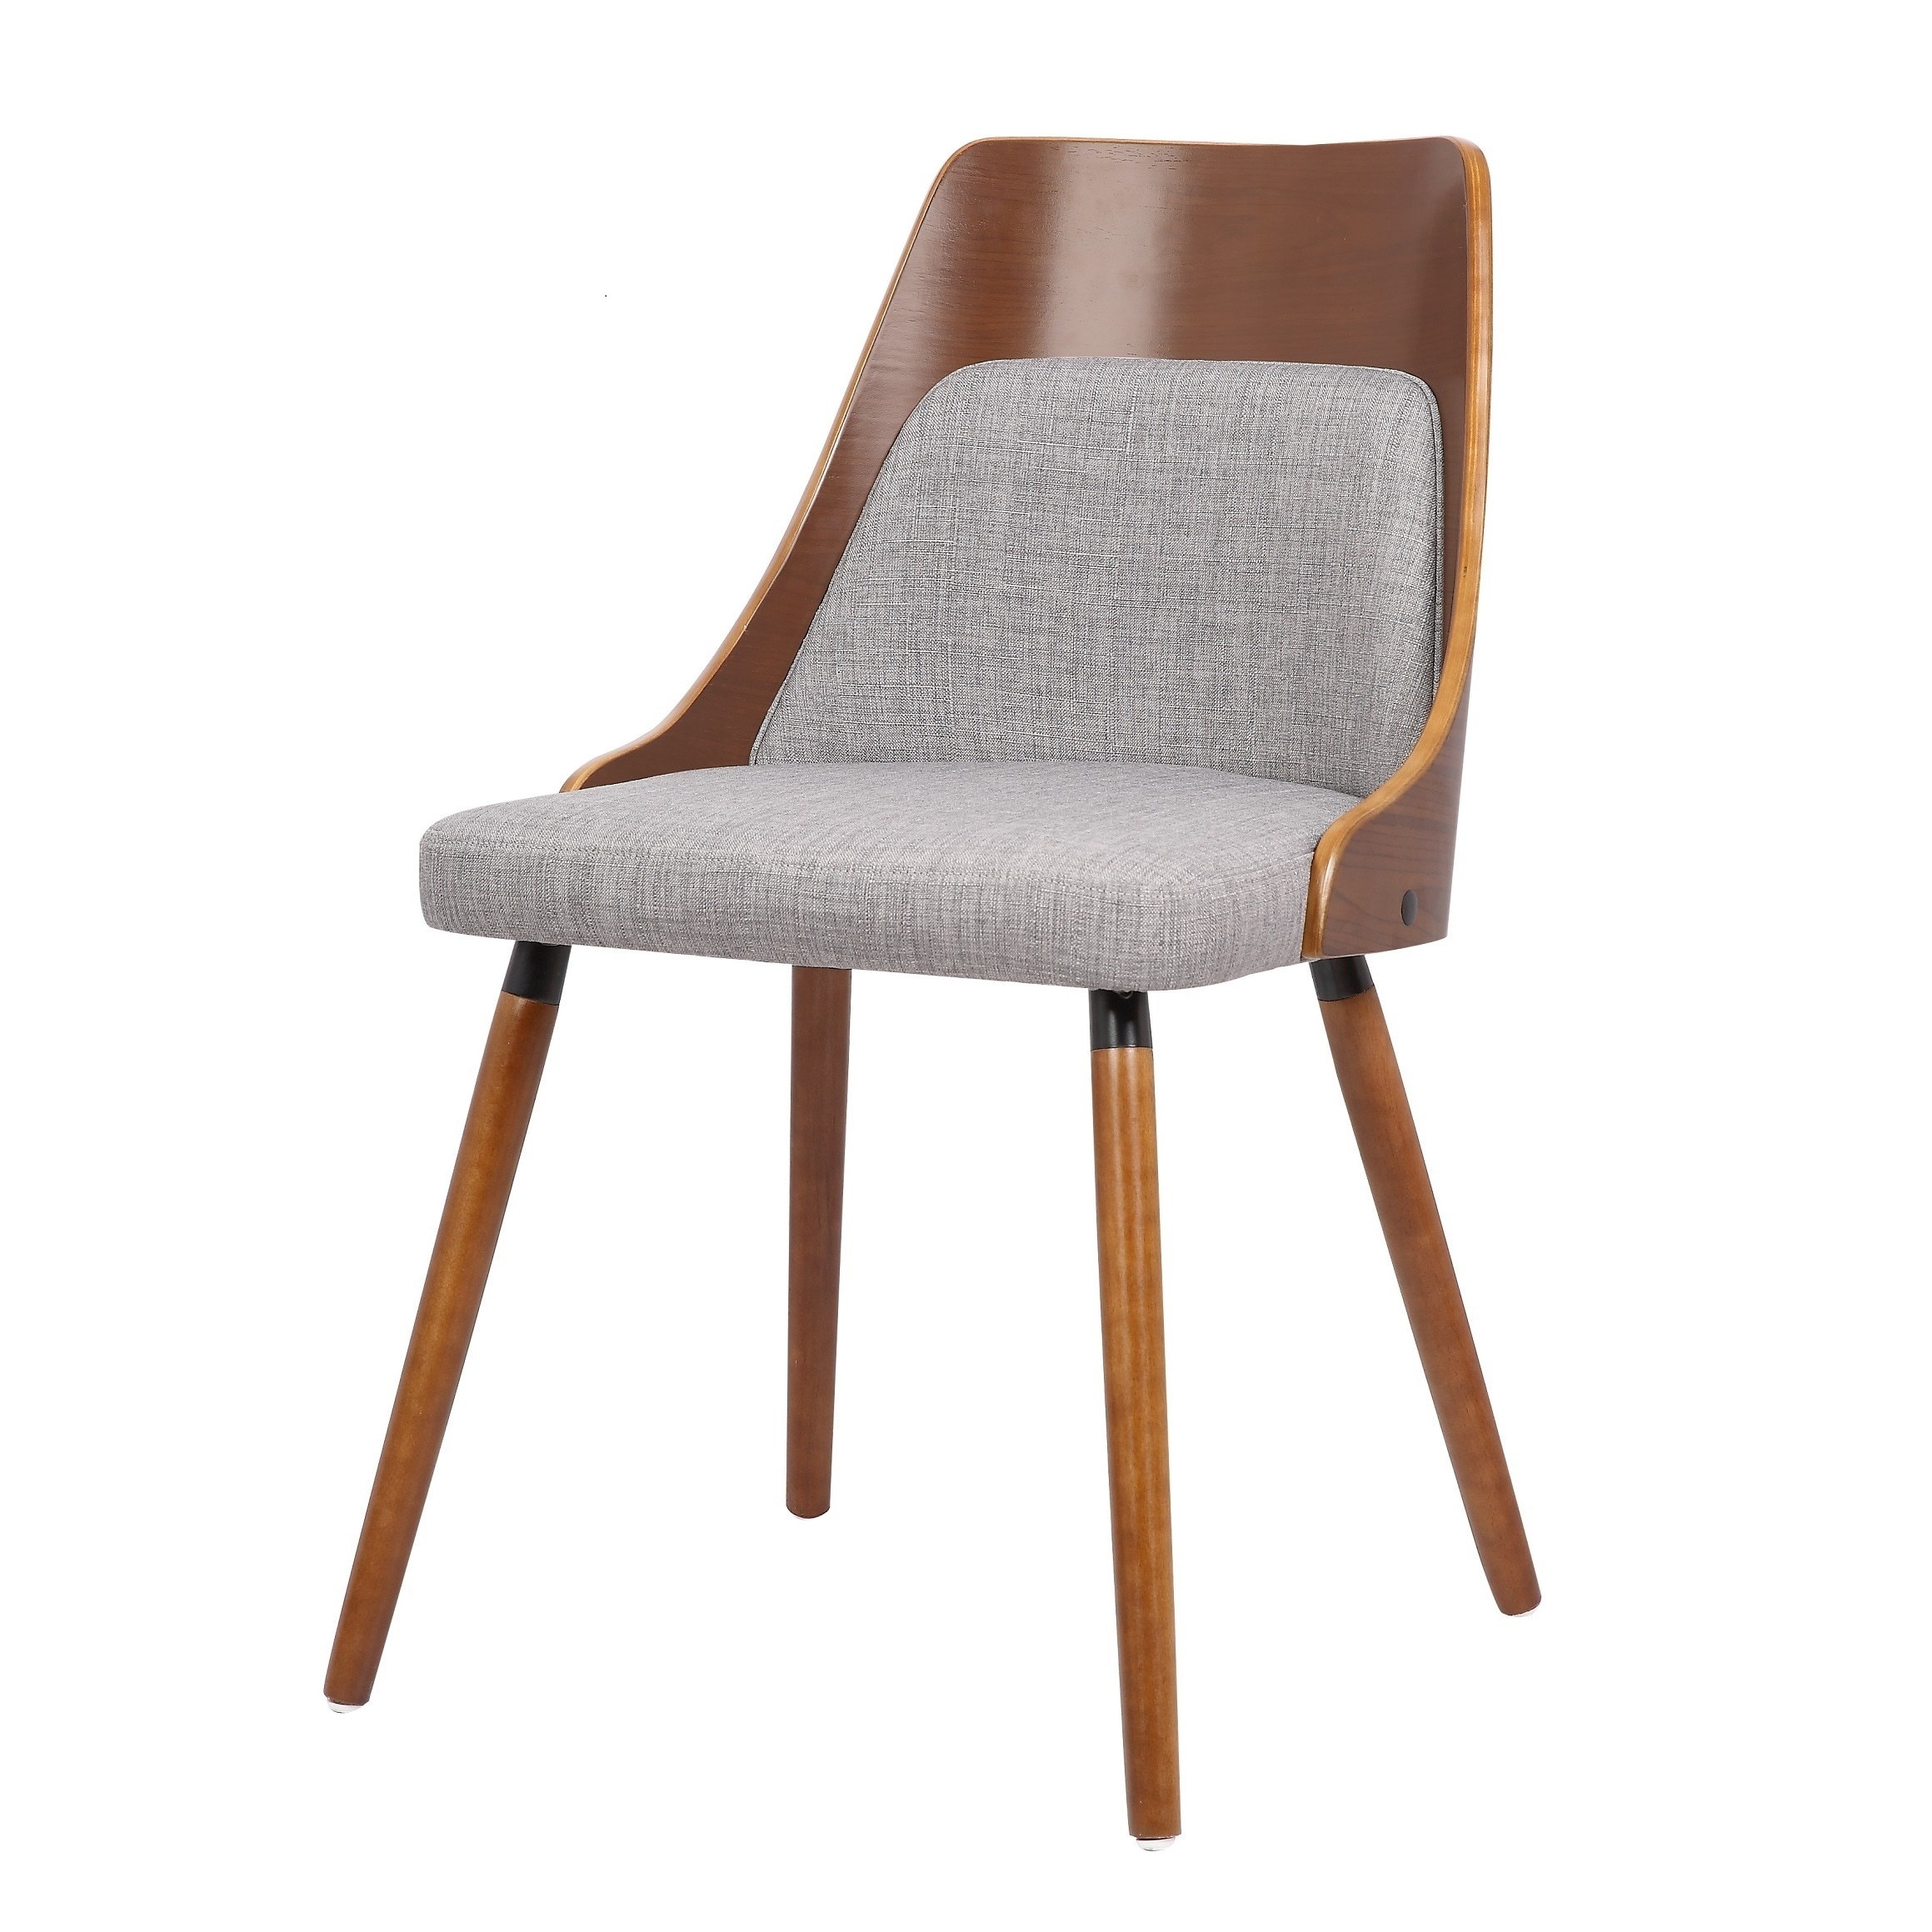 Phenomenal Walnut Plywood And Grey Fabric Dining Chair With Solid Wood Legs Ncnpc Chair Design For Home Ncnpcorg